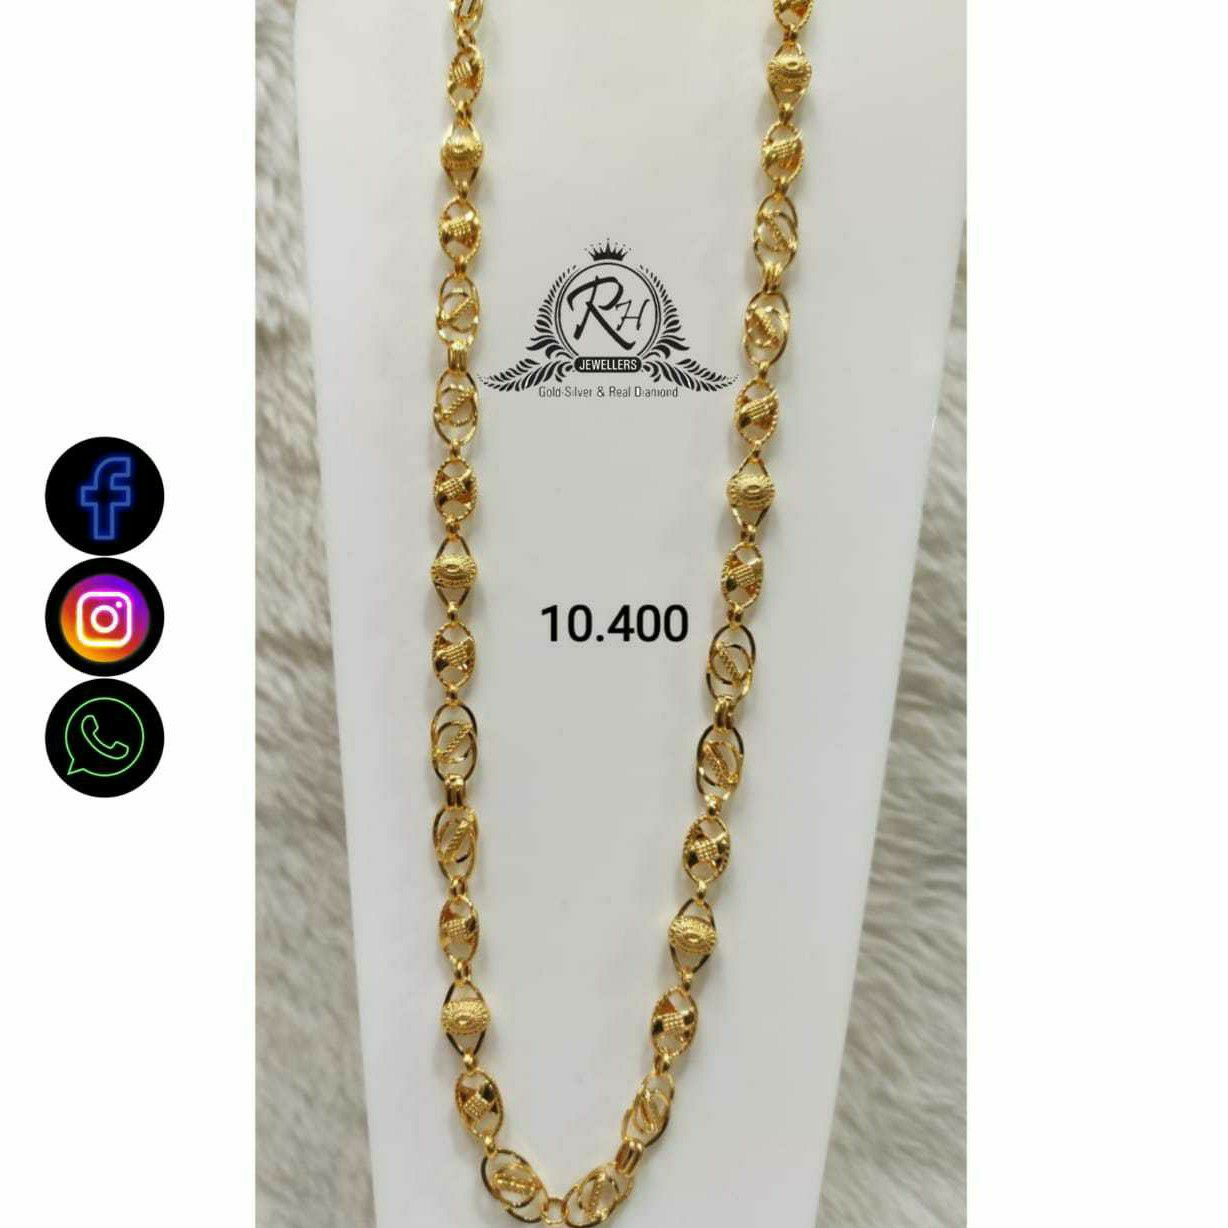 22 Carat Gold Traditional Gents Chain RH-CH775